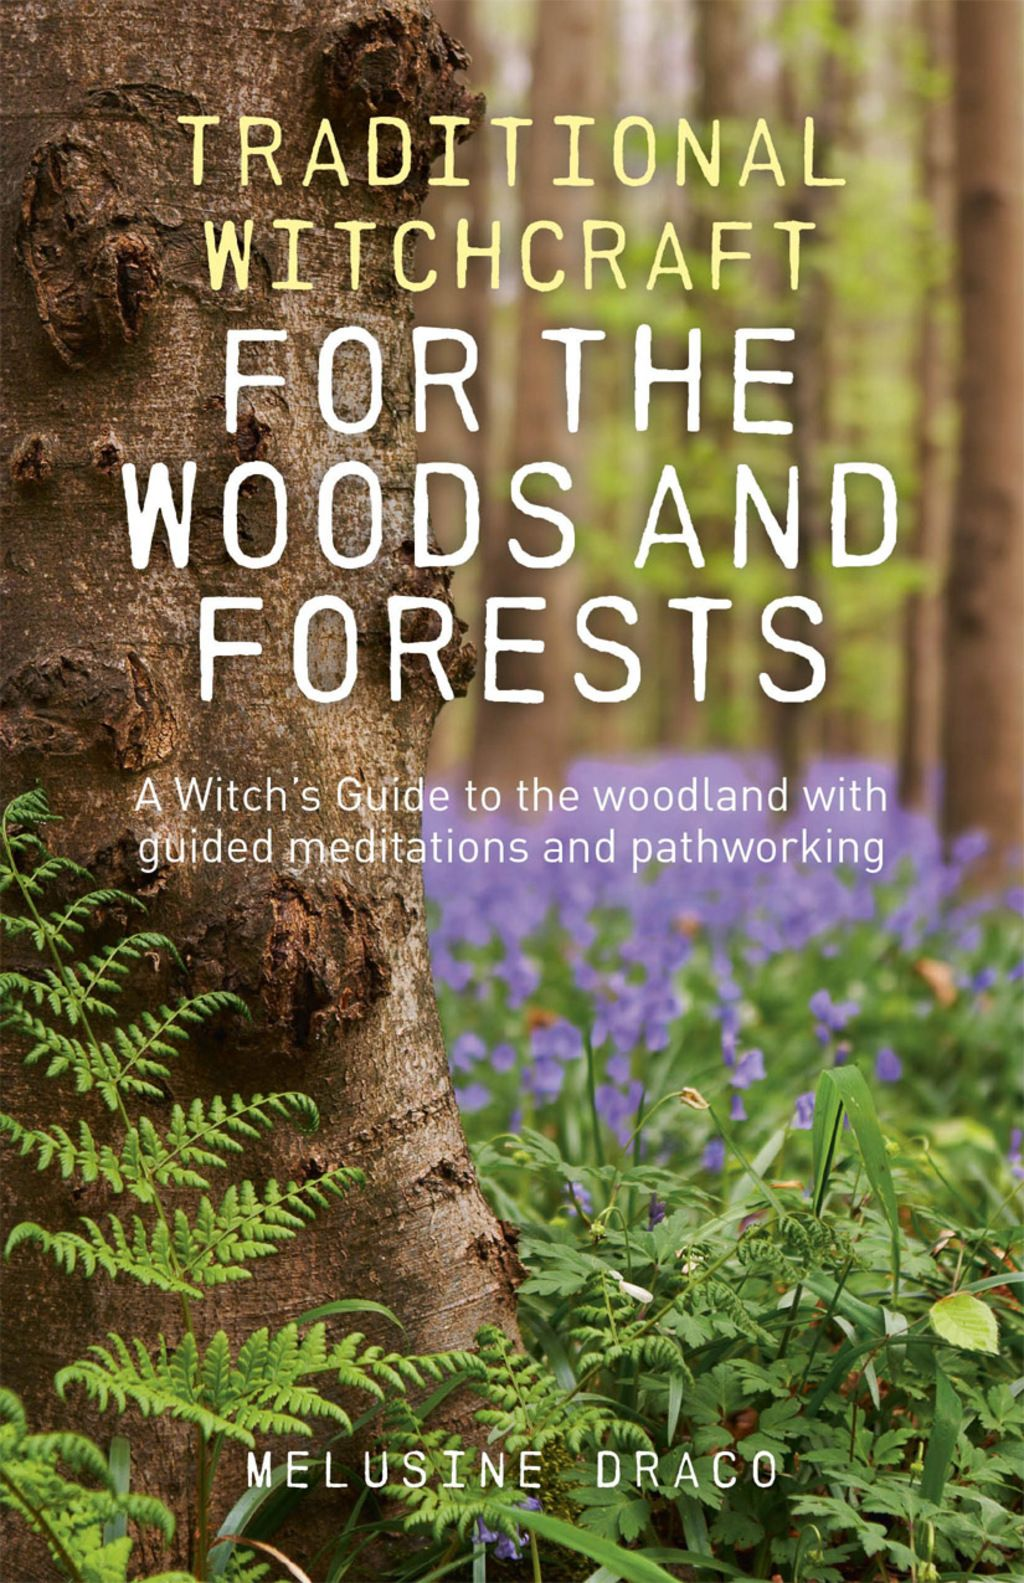 Traditional Witchcraft for the Woods and Forests: A Witch's Guide to the Woodland with Guided Meditations and Pathworking (eBook) #greenwitchcraft